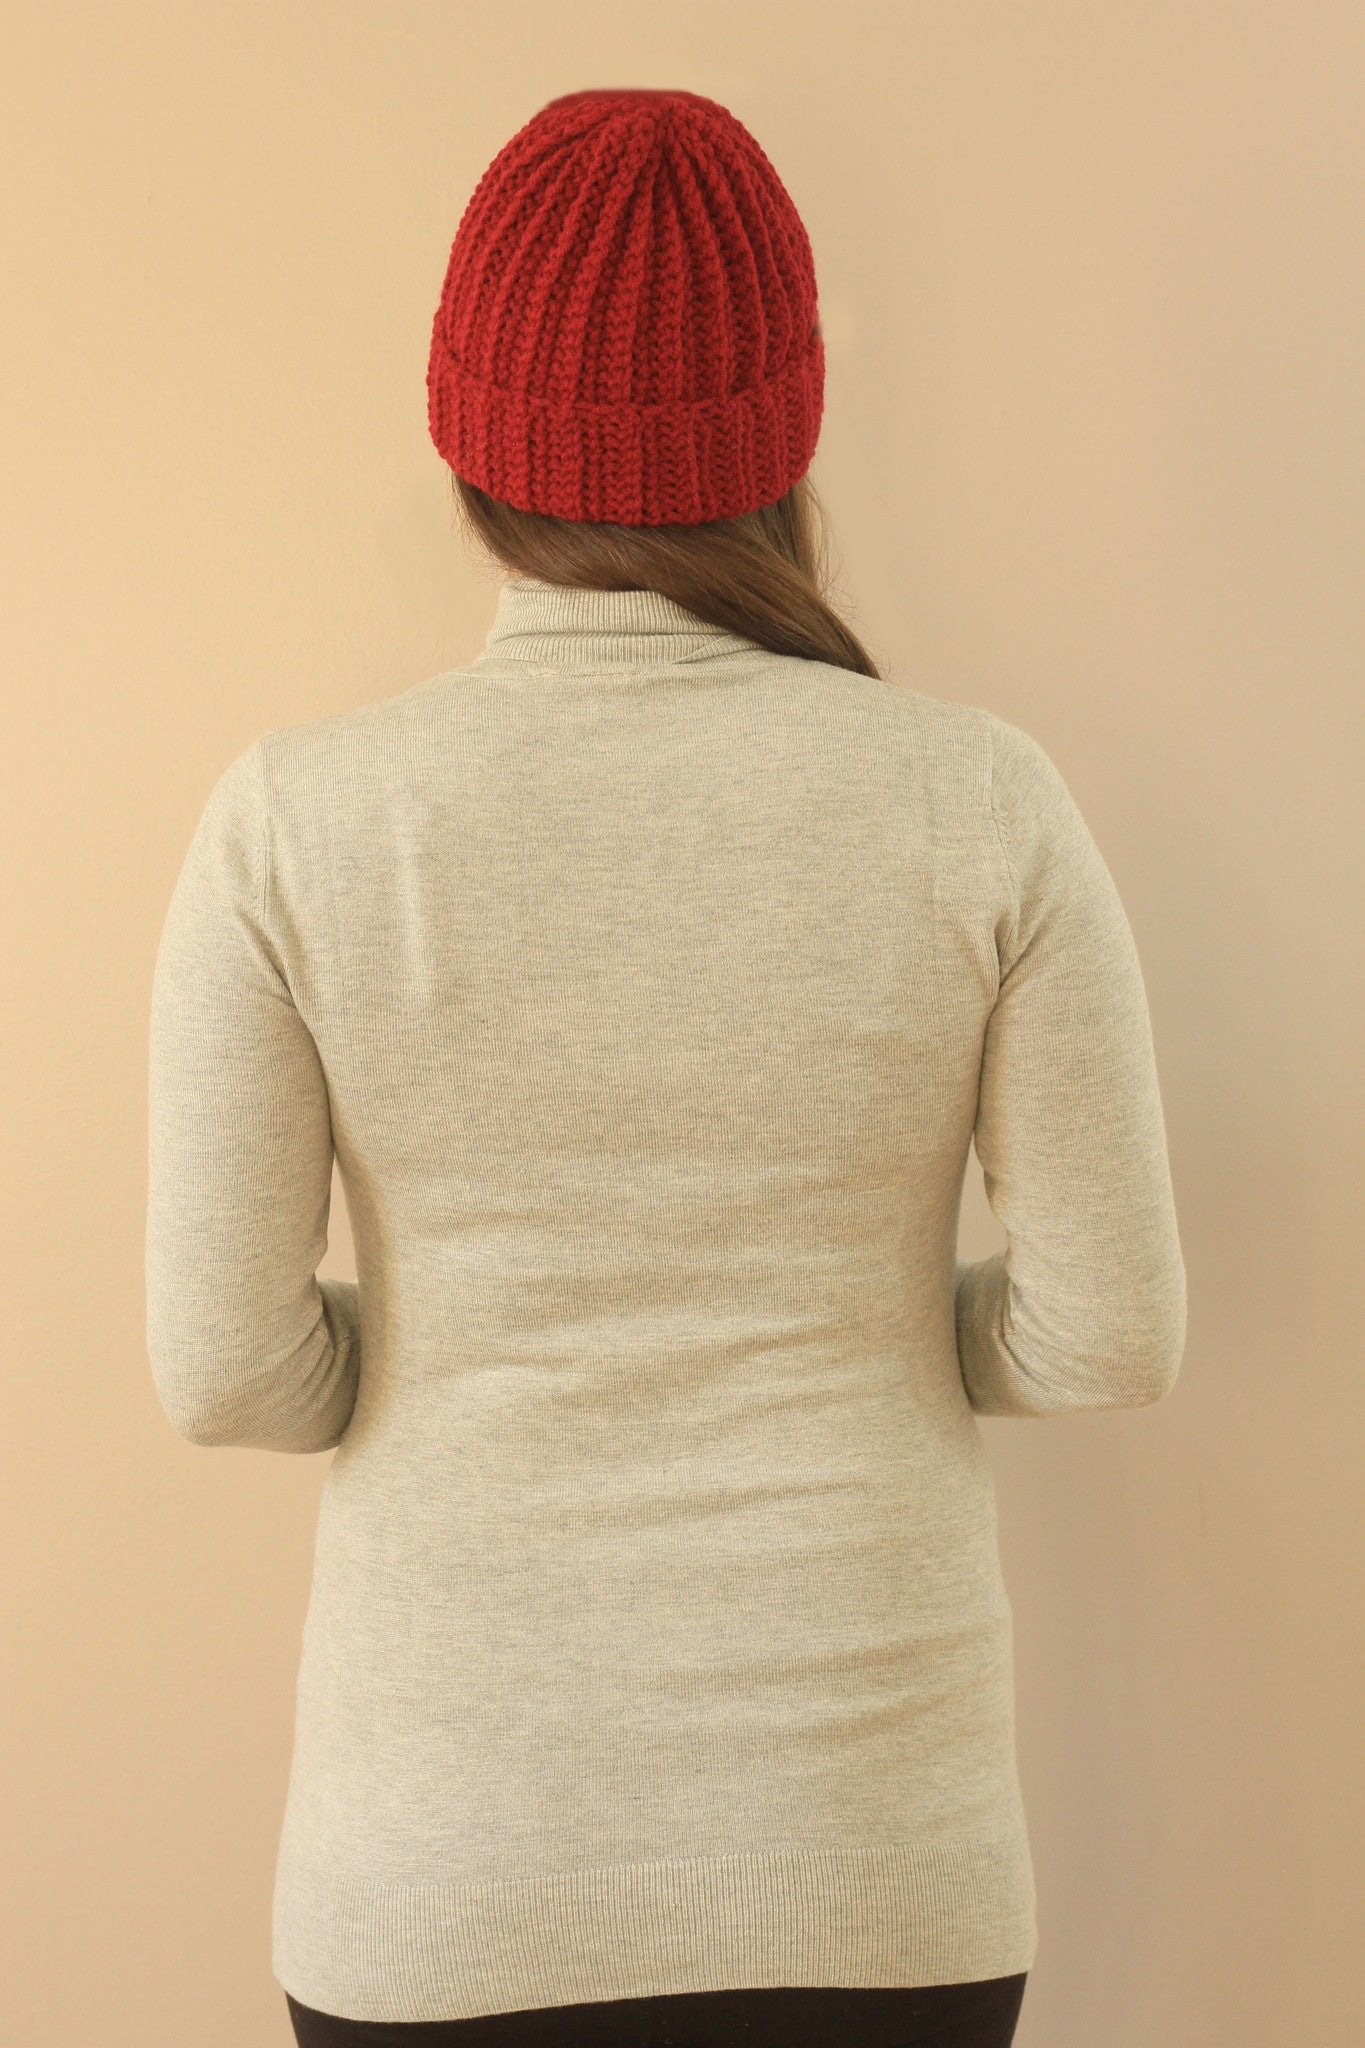 red ribbed hat handmade unisex nice hat hipster mile end made